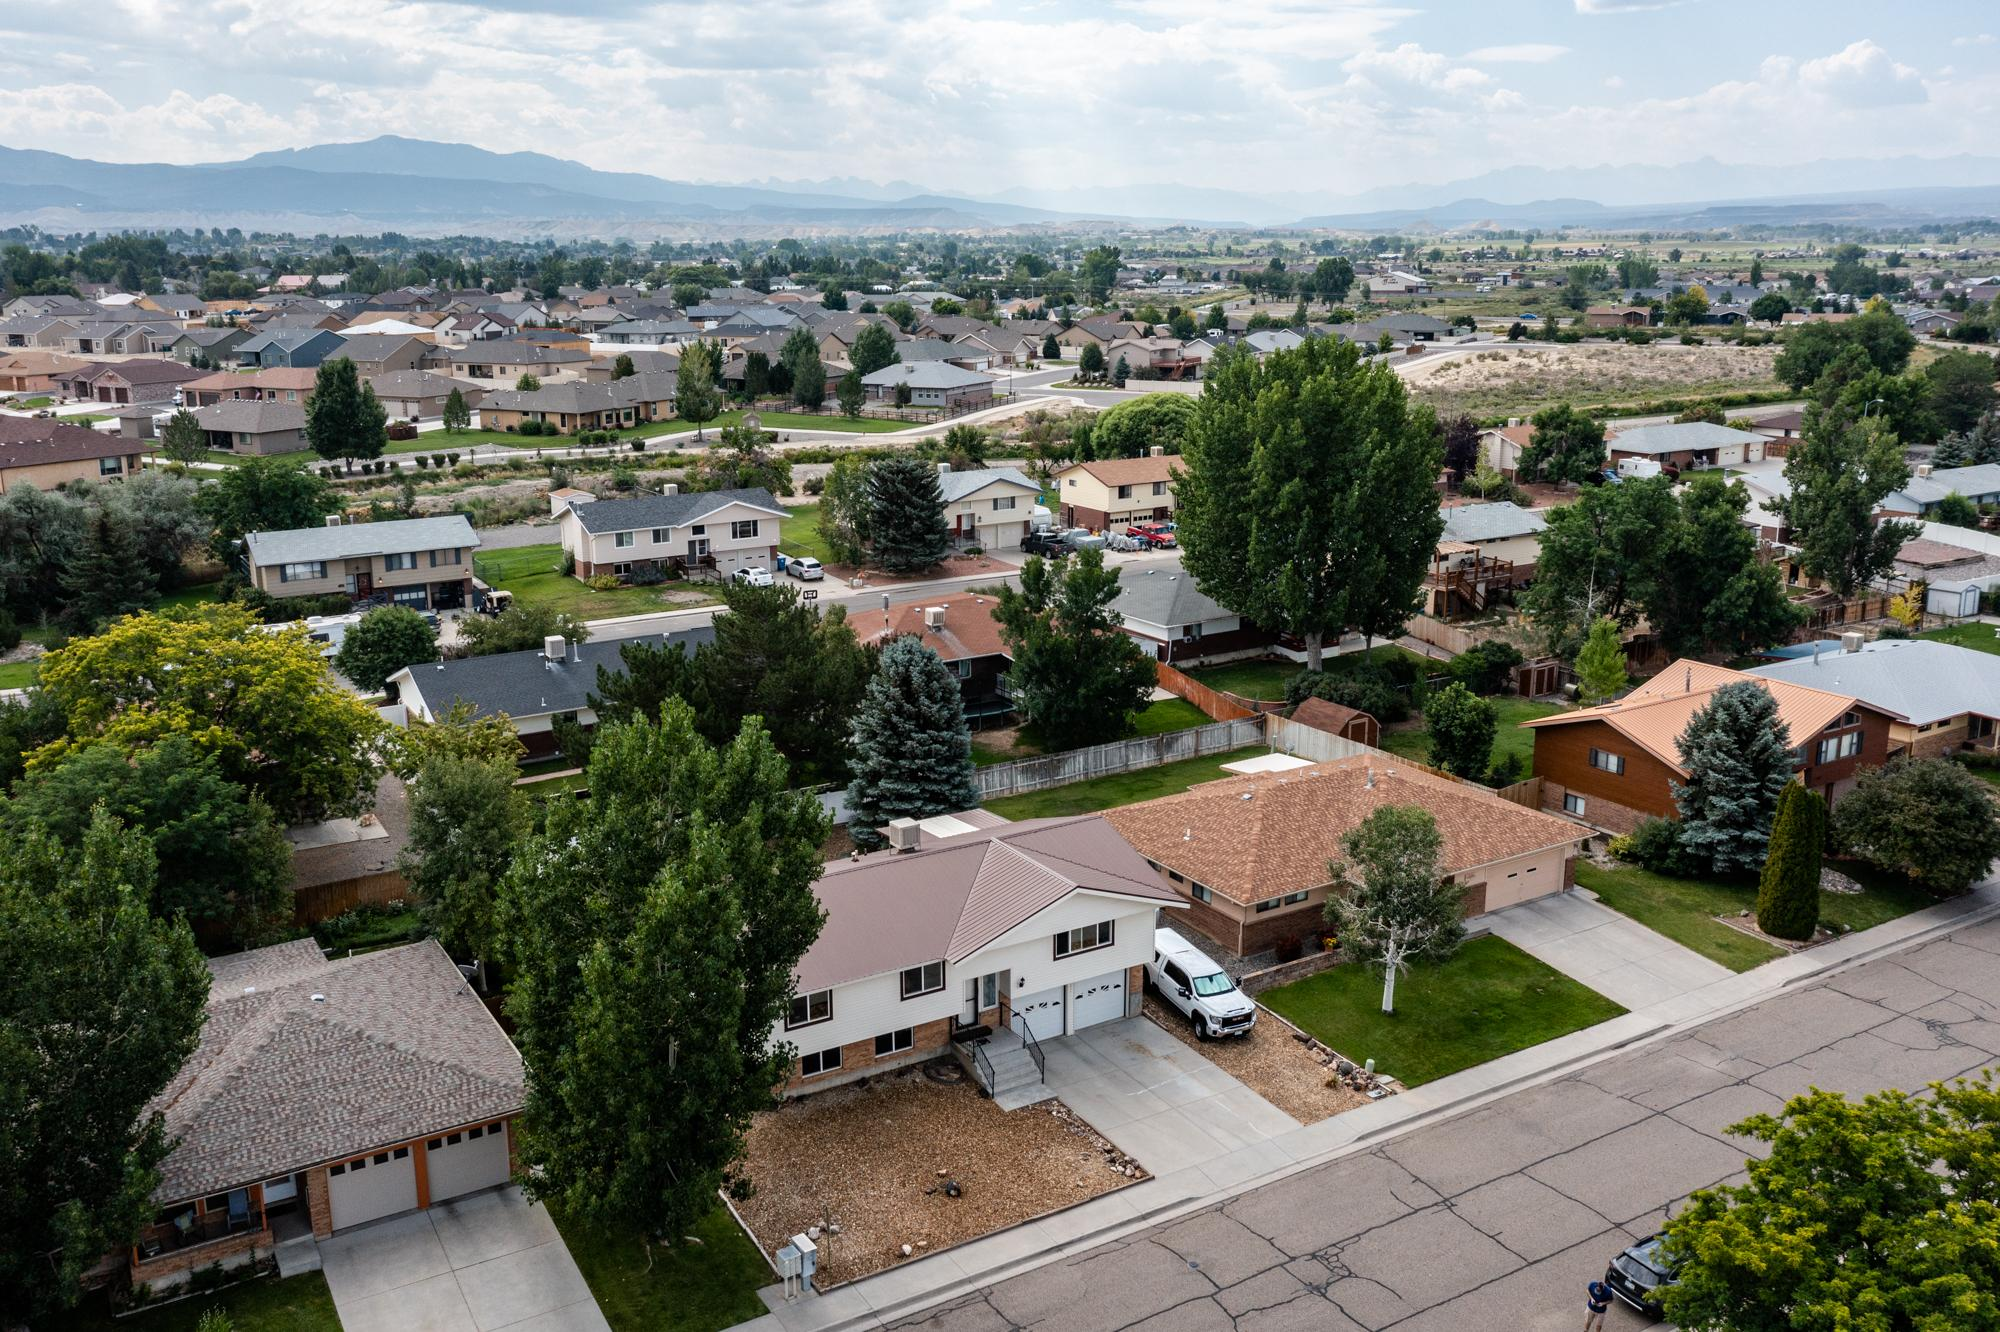 Aerial View of Southern Mountain Views - 1311 Manchester Dr Montrose, CO 81401 - Atha Team Realty Agents